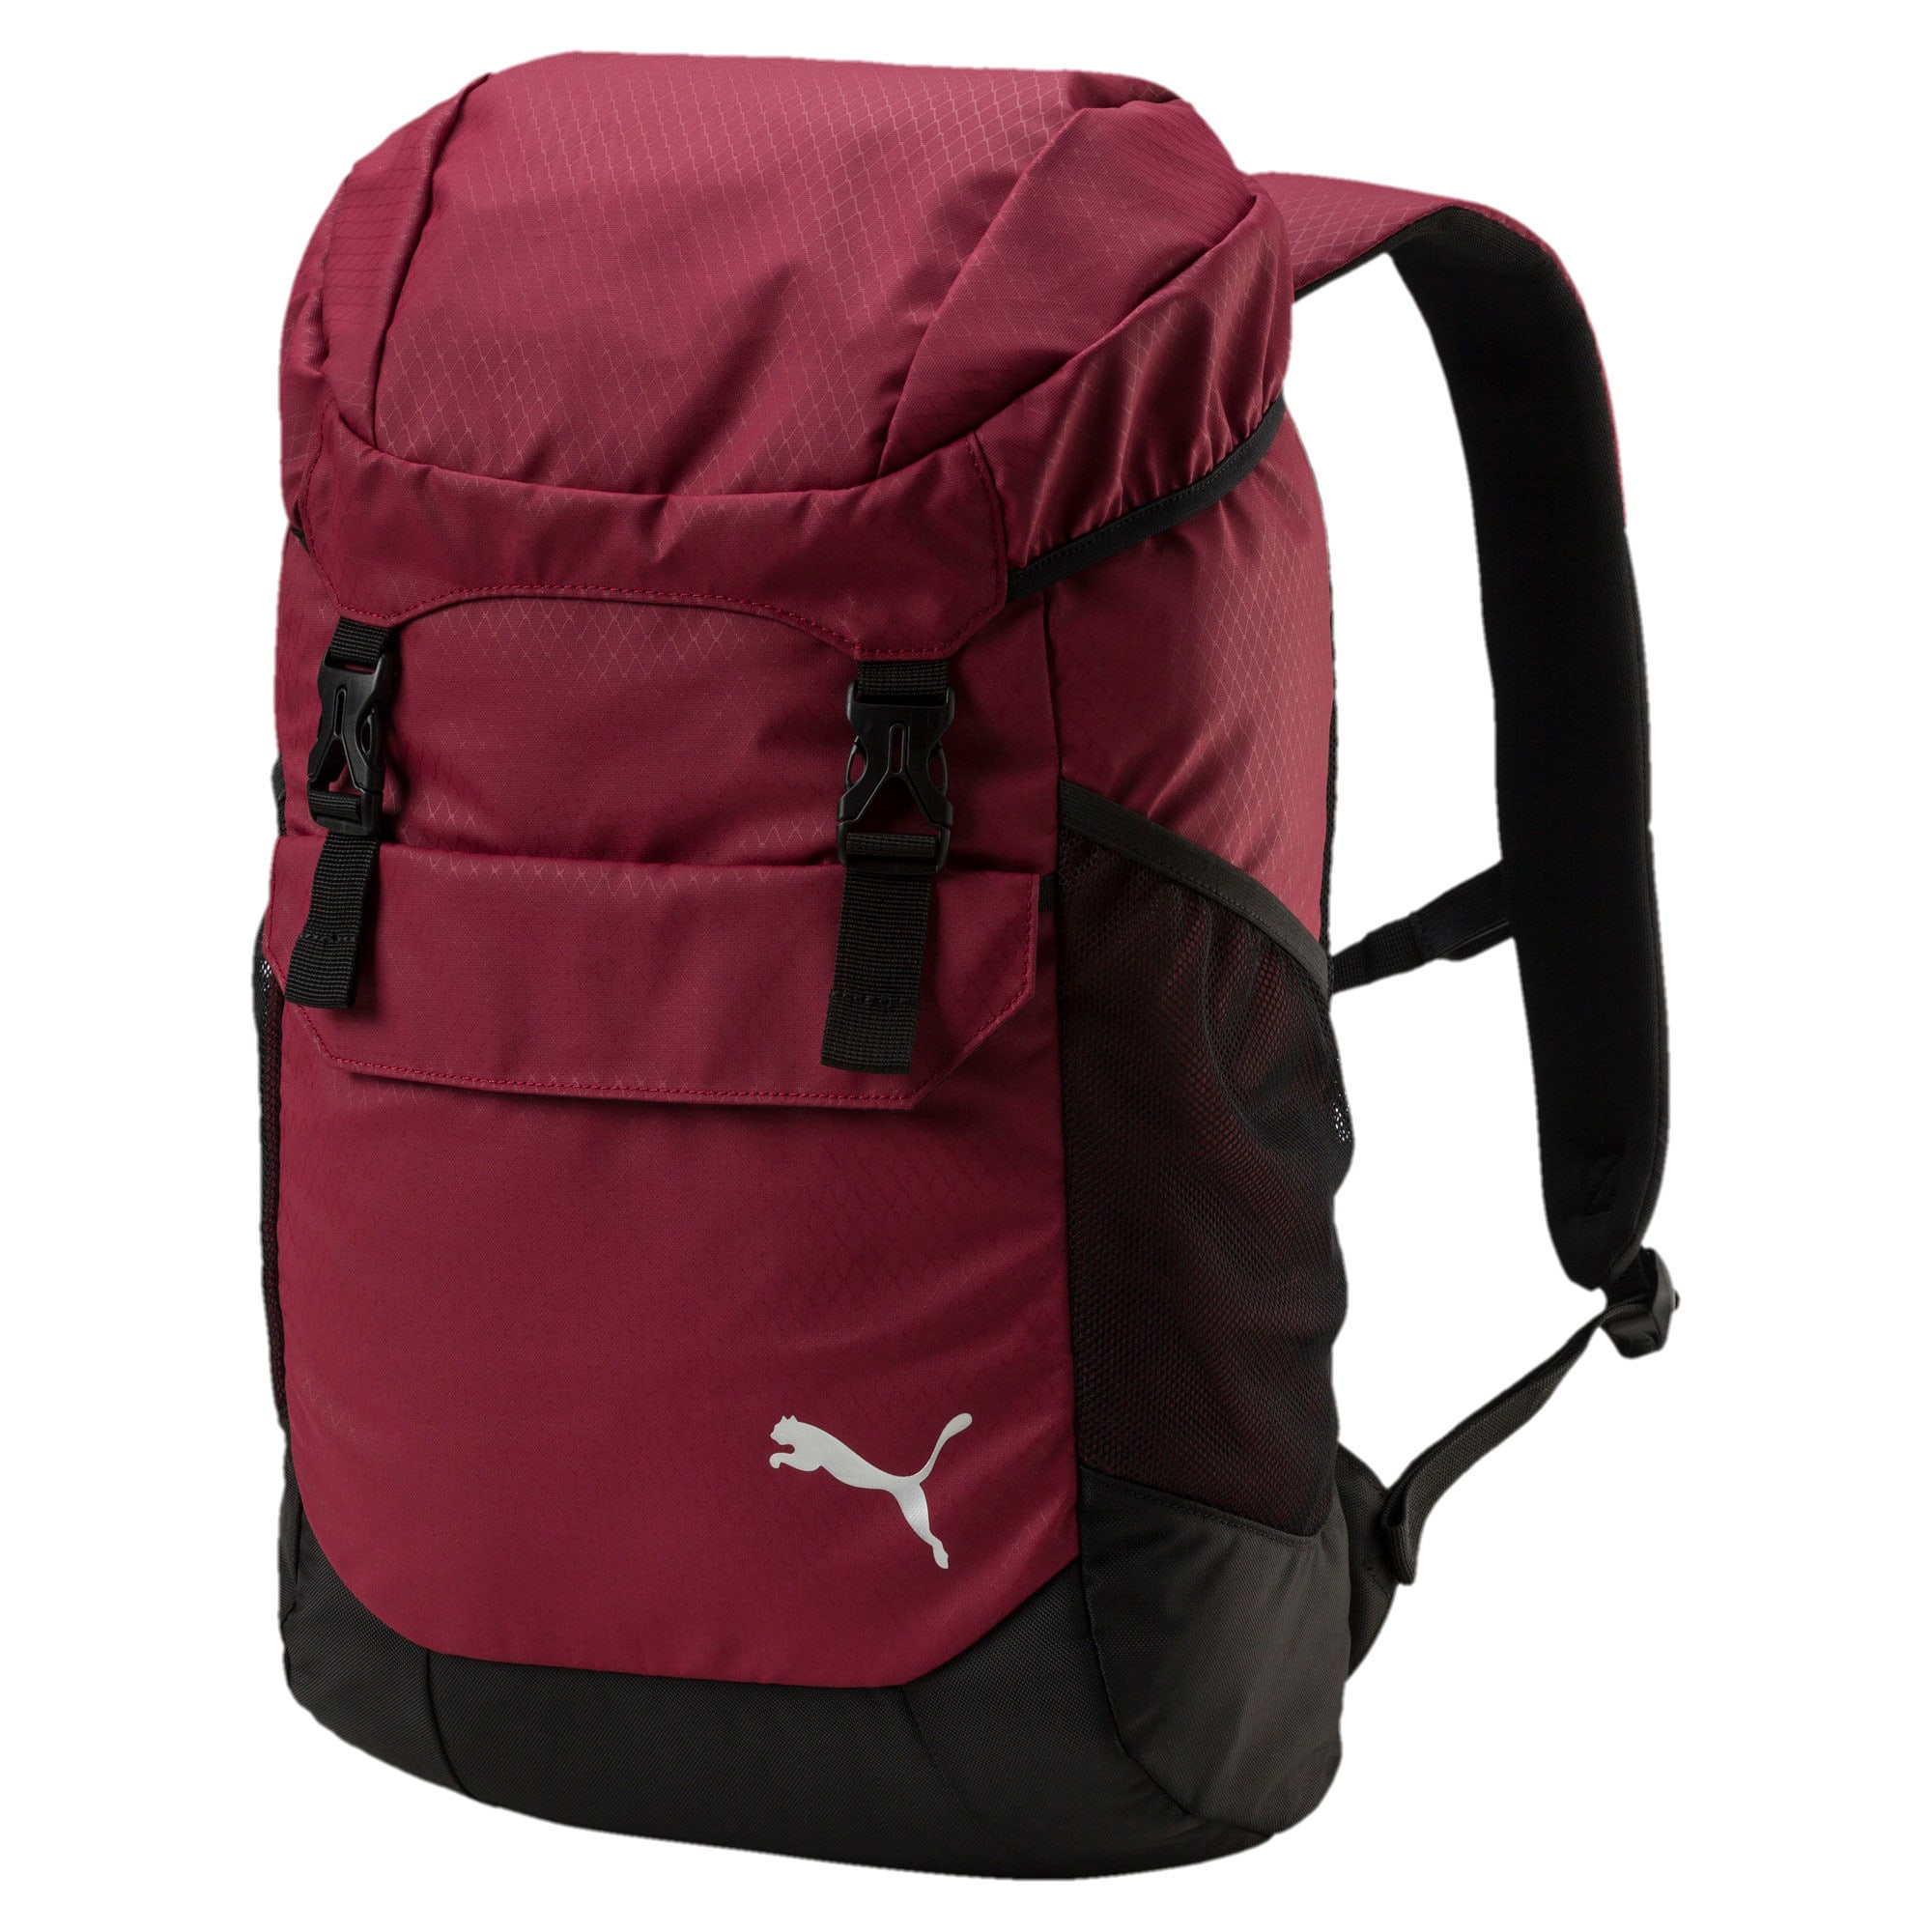 Thumbnail 1 of Training Daily Backpack, Pomegranate-Puma Black, medium